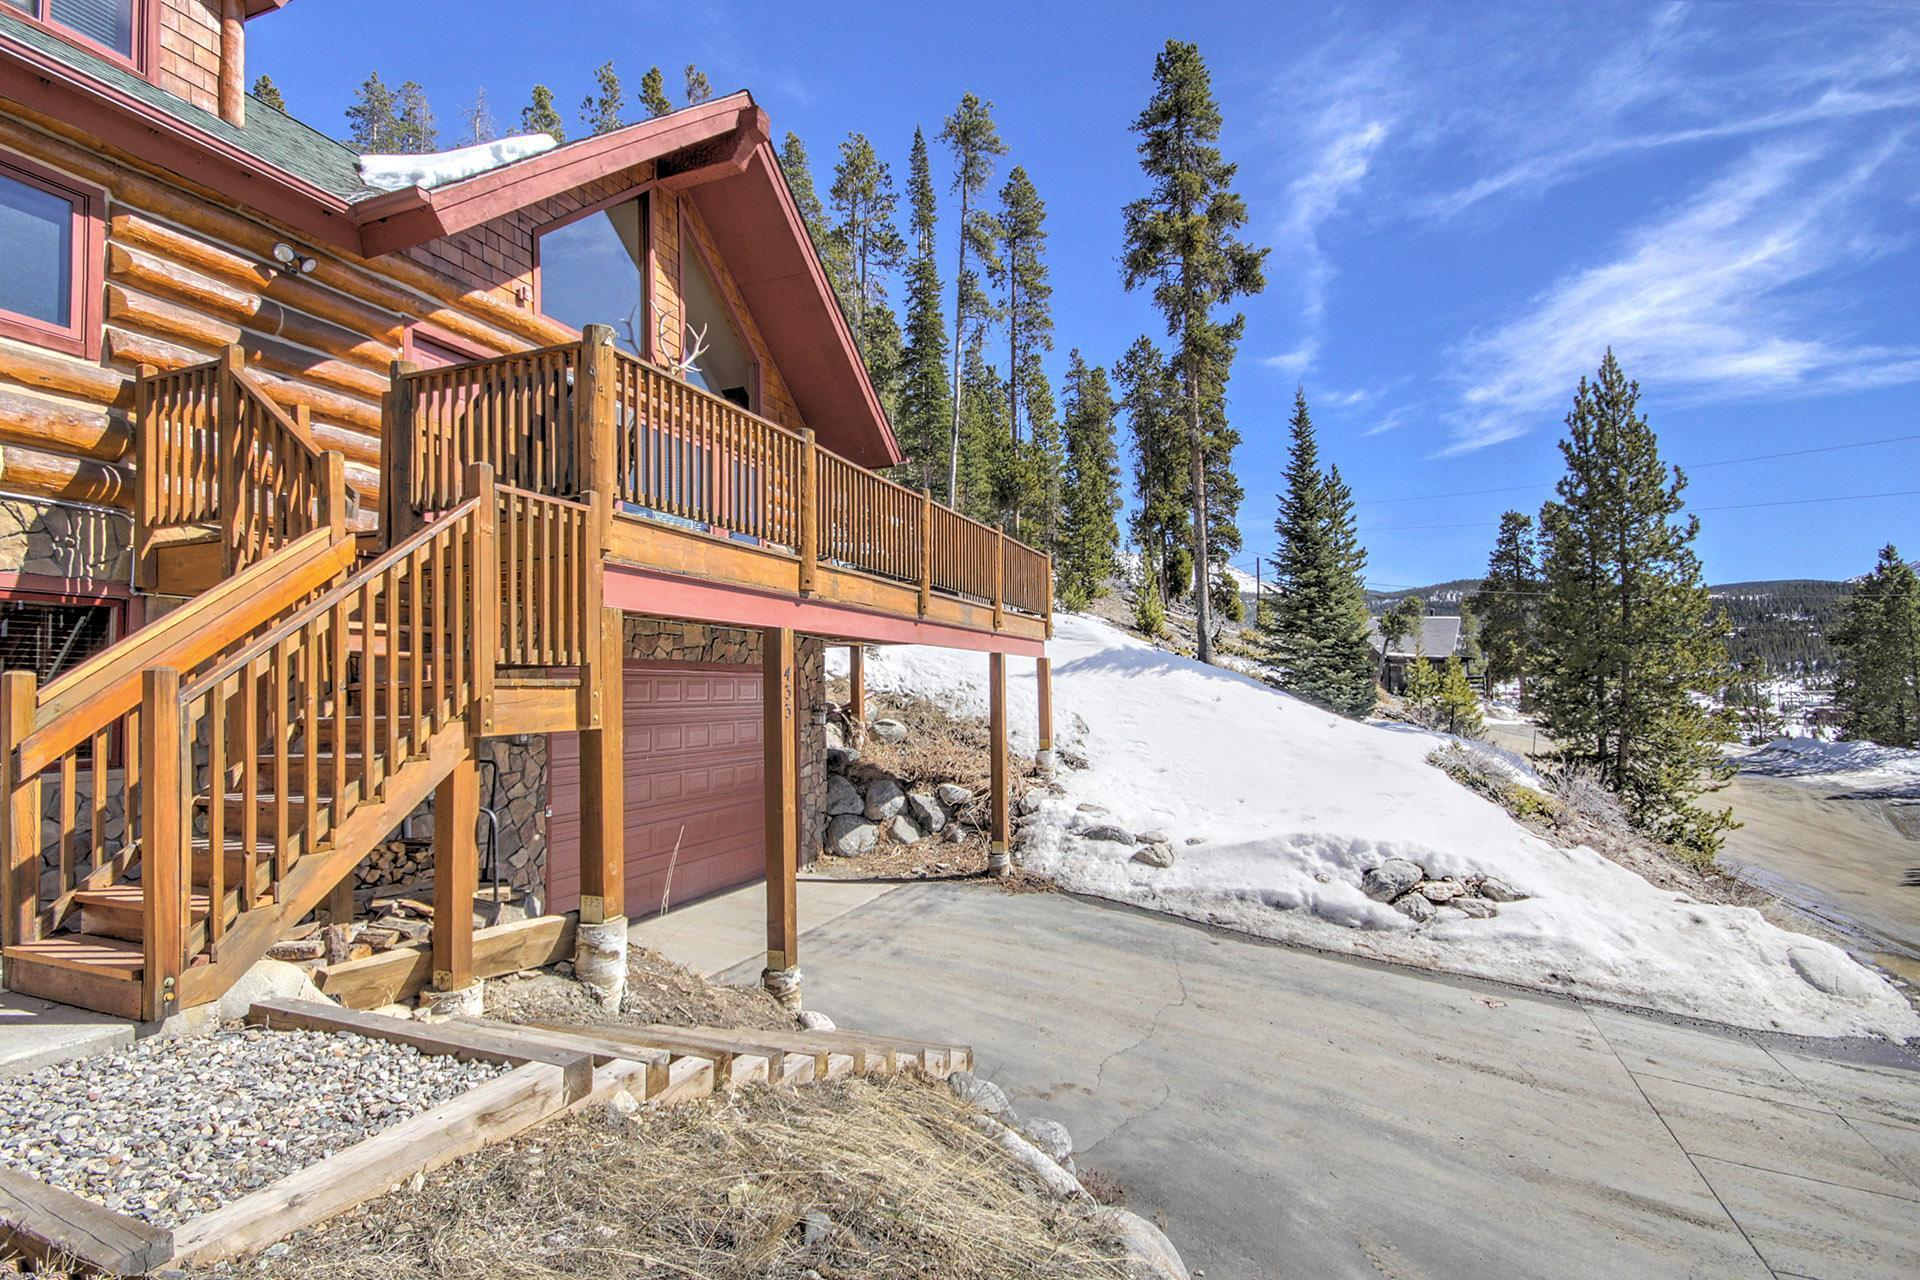 Lovely mountain home with views from large deck